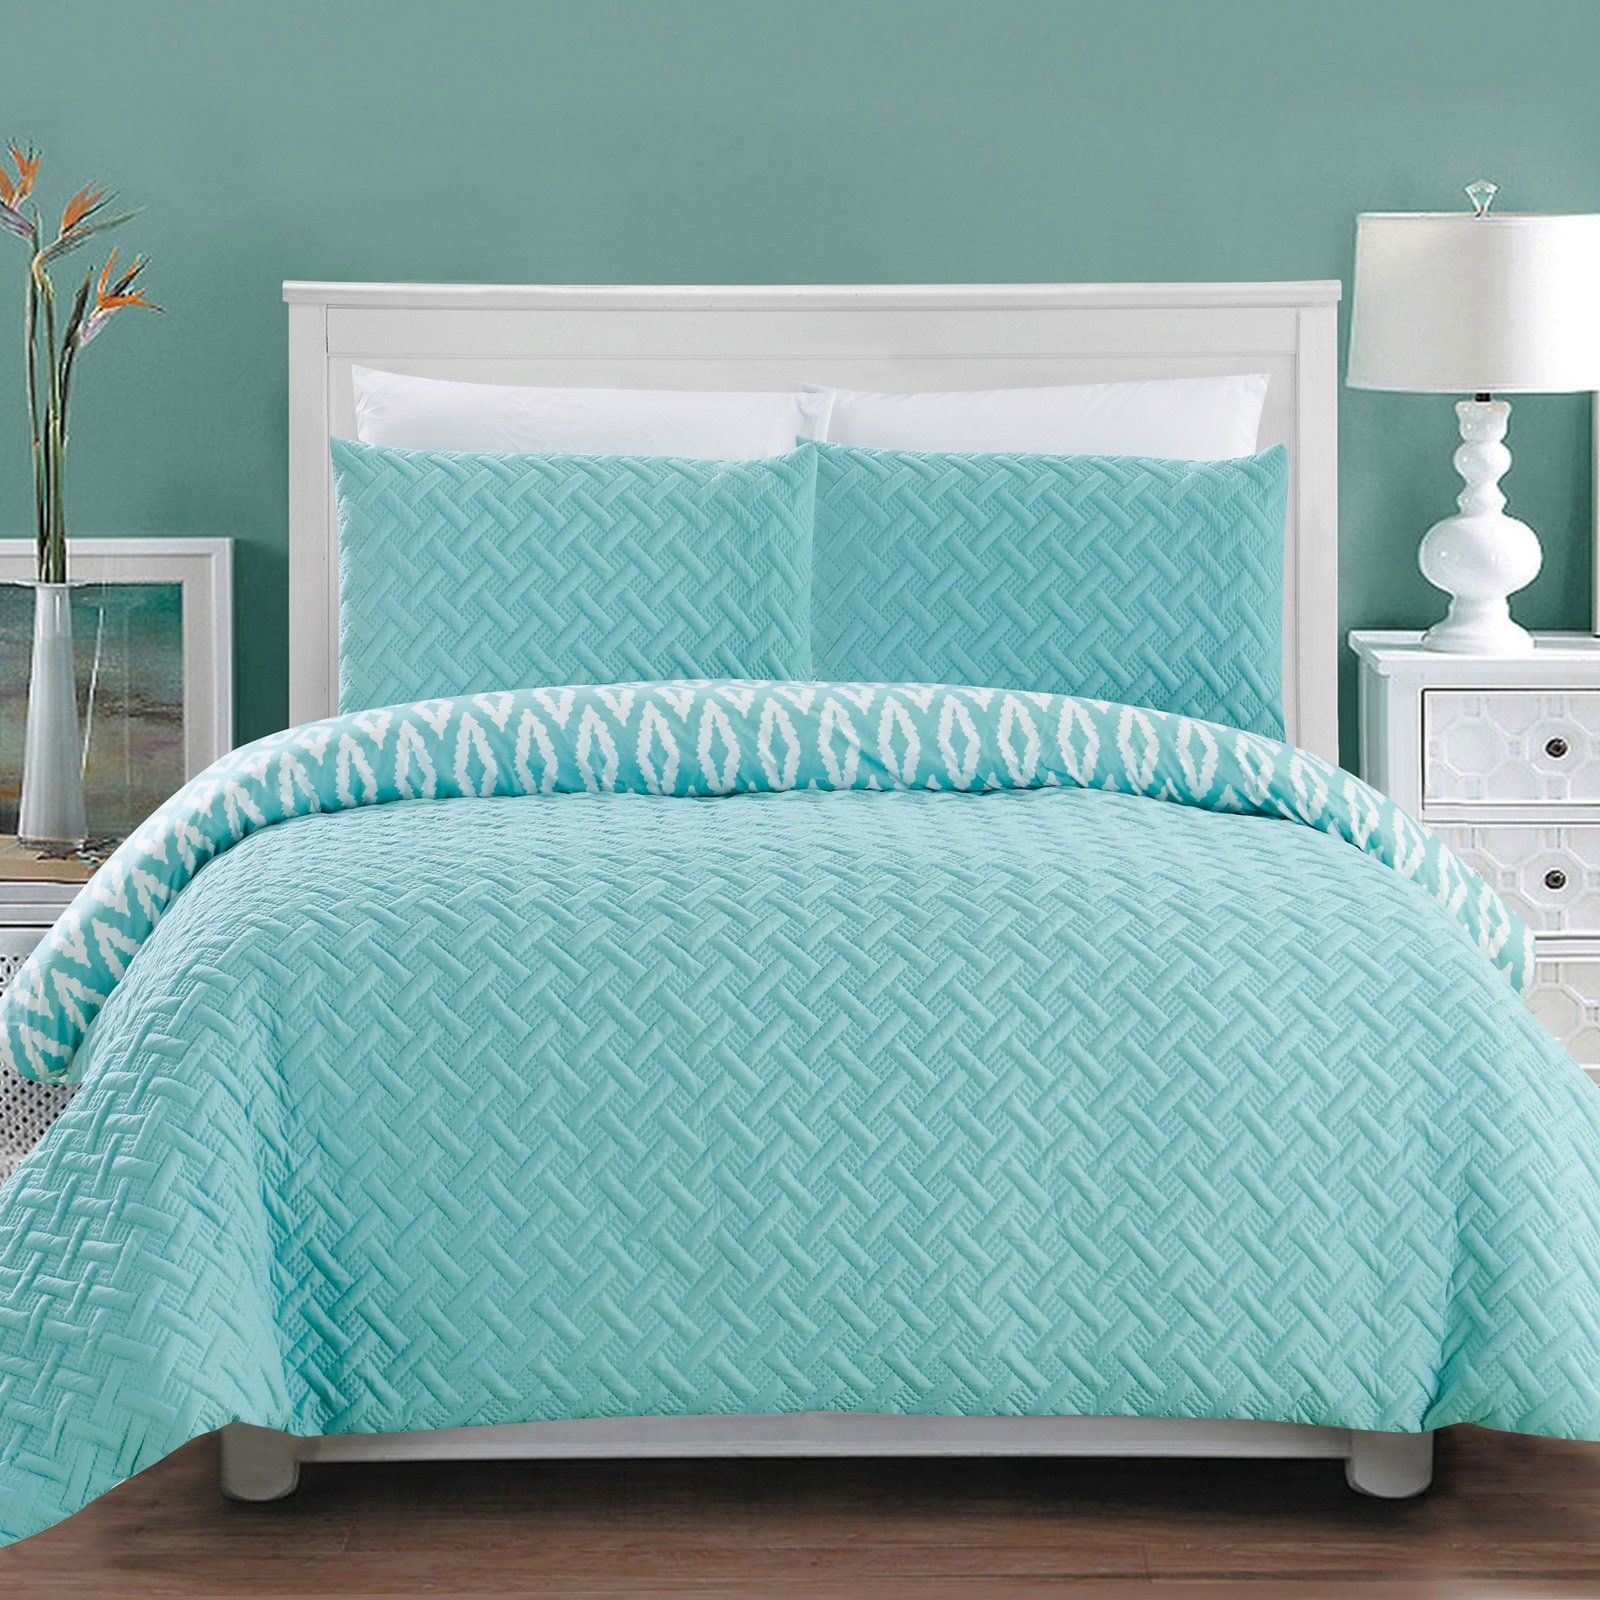 3 Piece Sabina Comforter Set By Chic Home Comforter Sets Bed